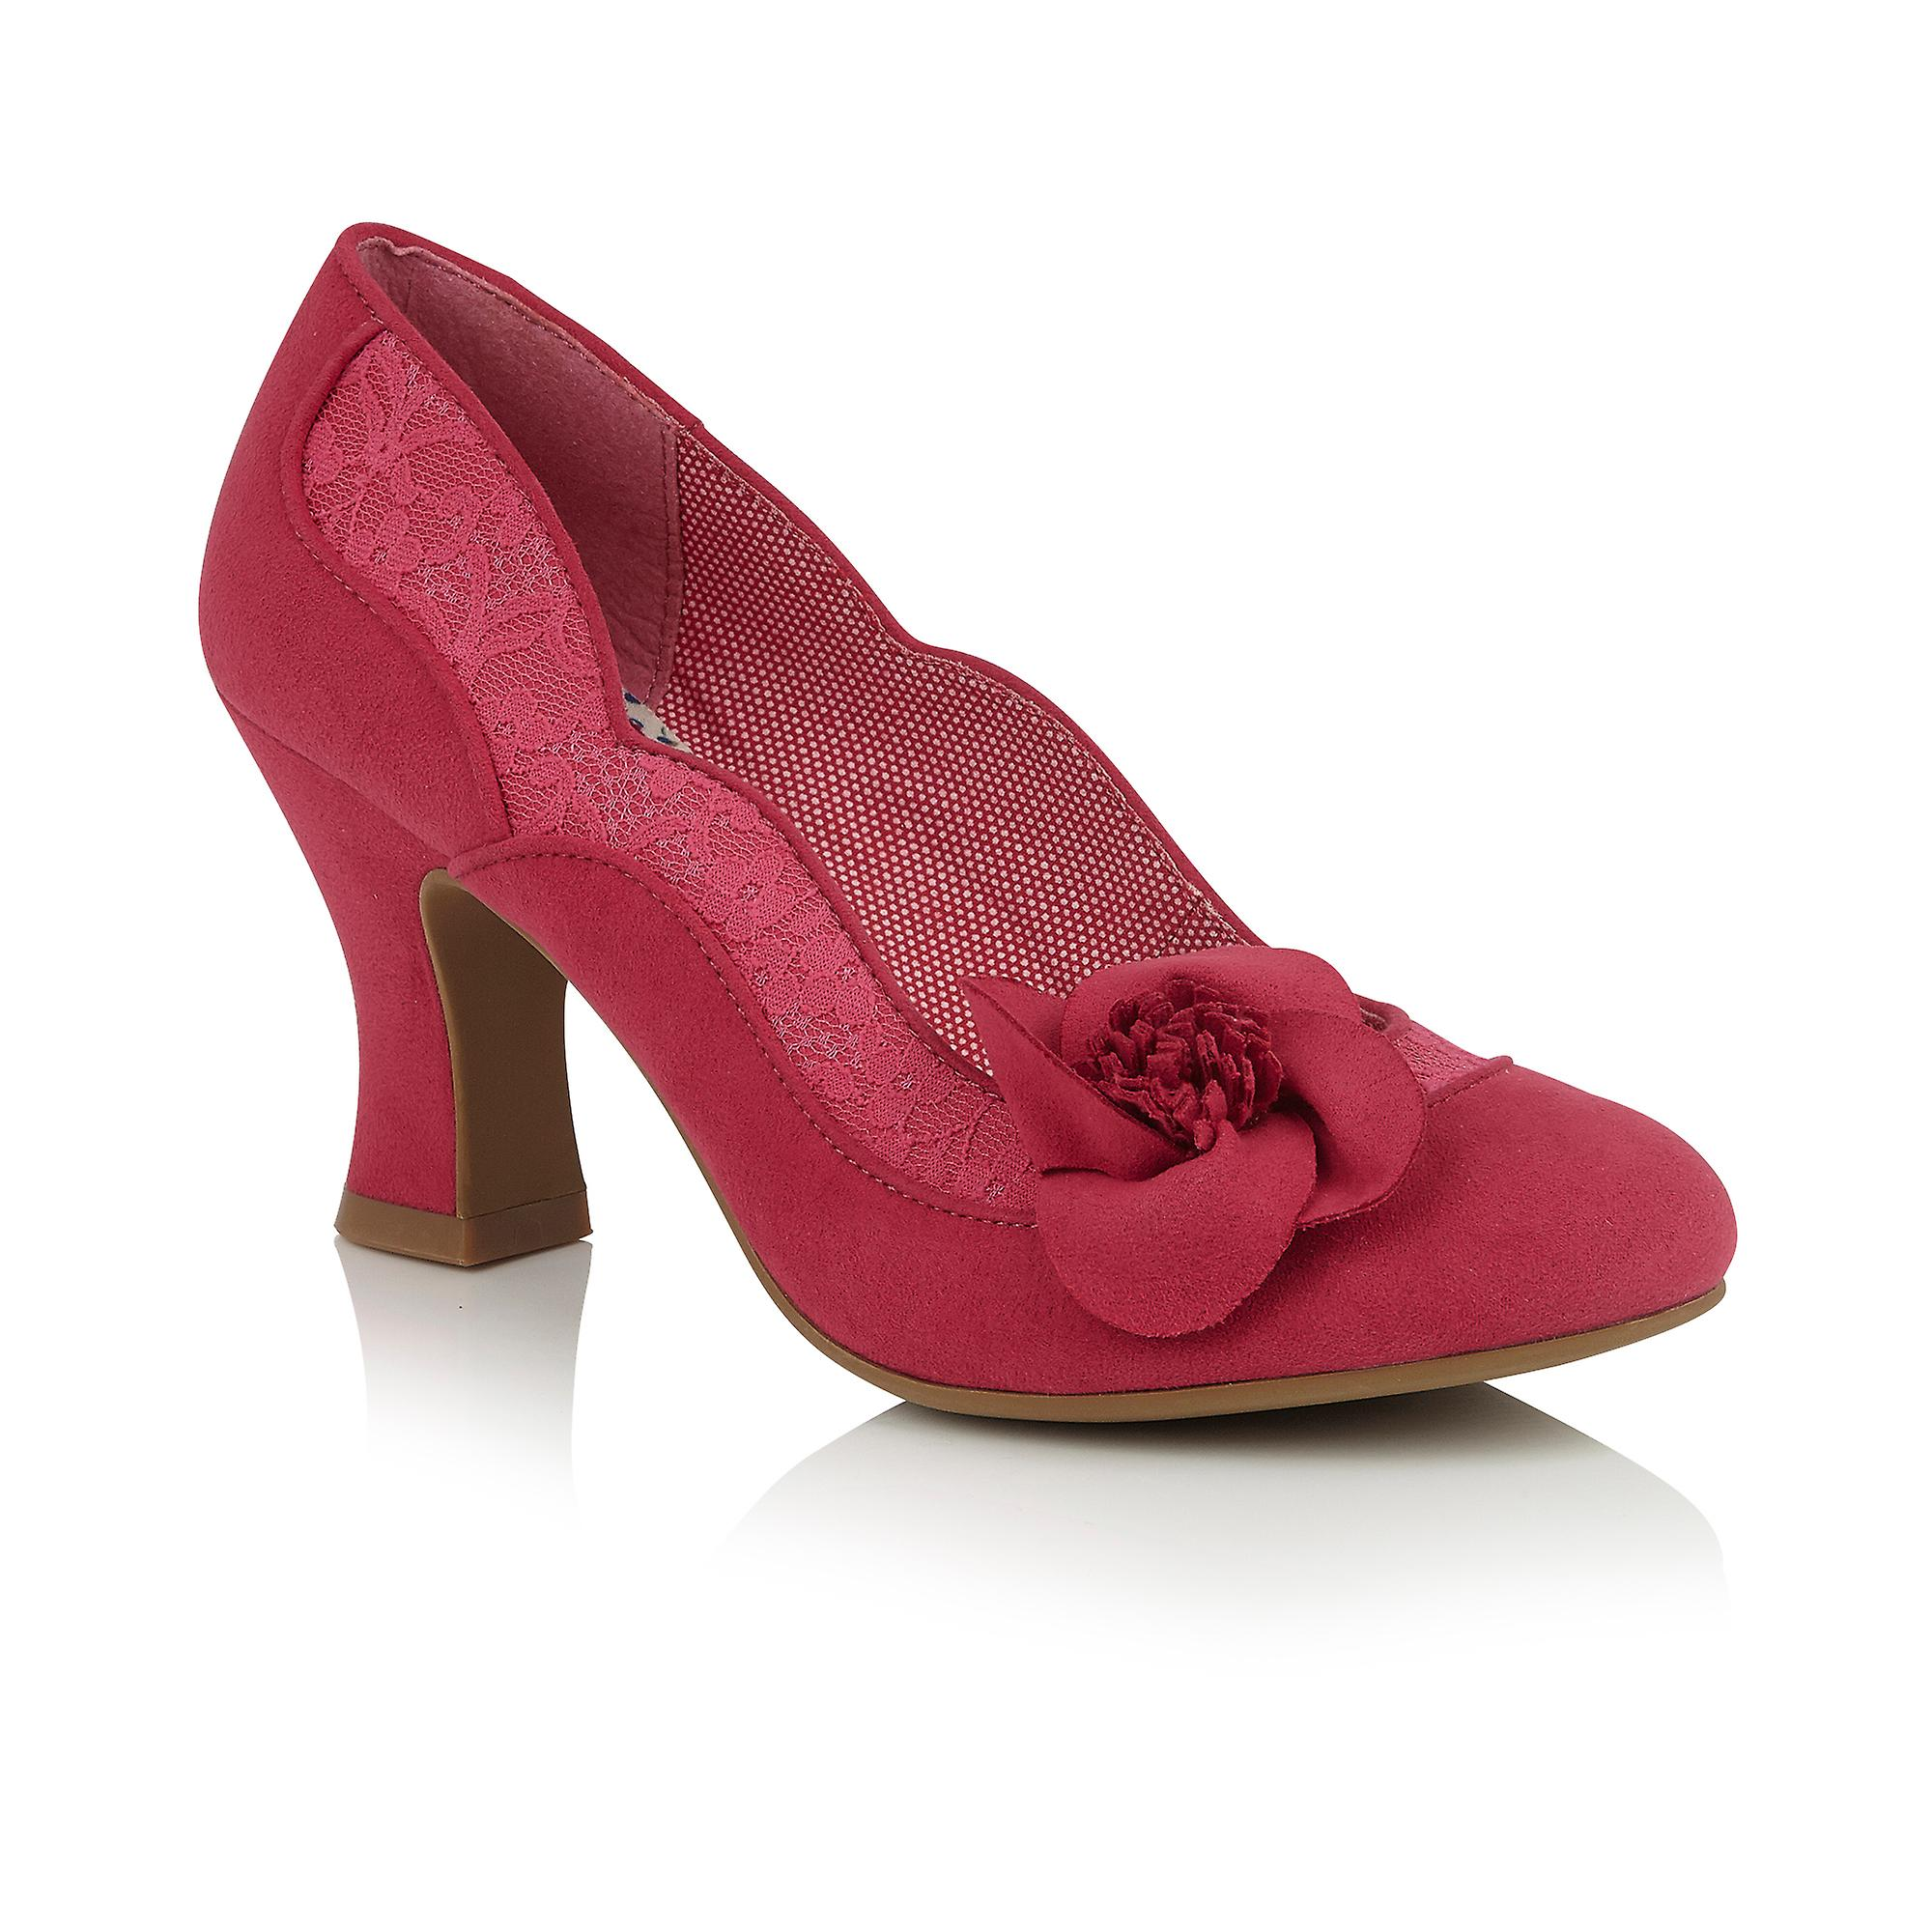 Ruby Shoo Kobiety's Veronica Lace Corsage Court Shoe wDwgN